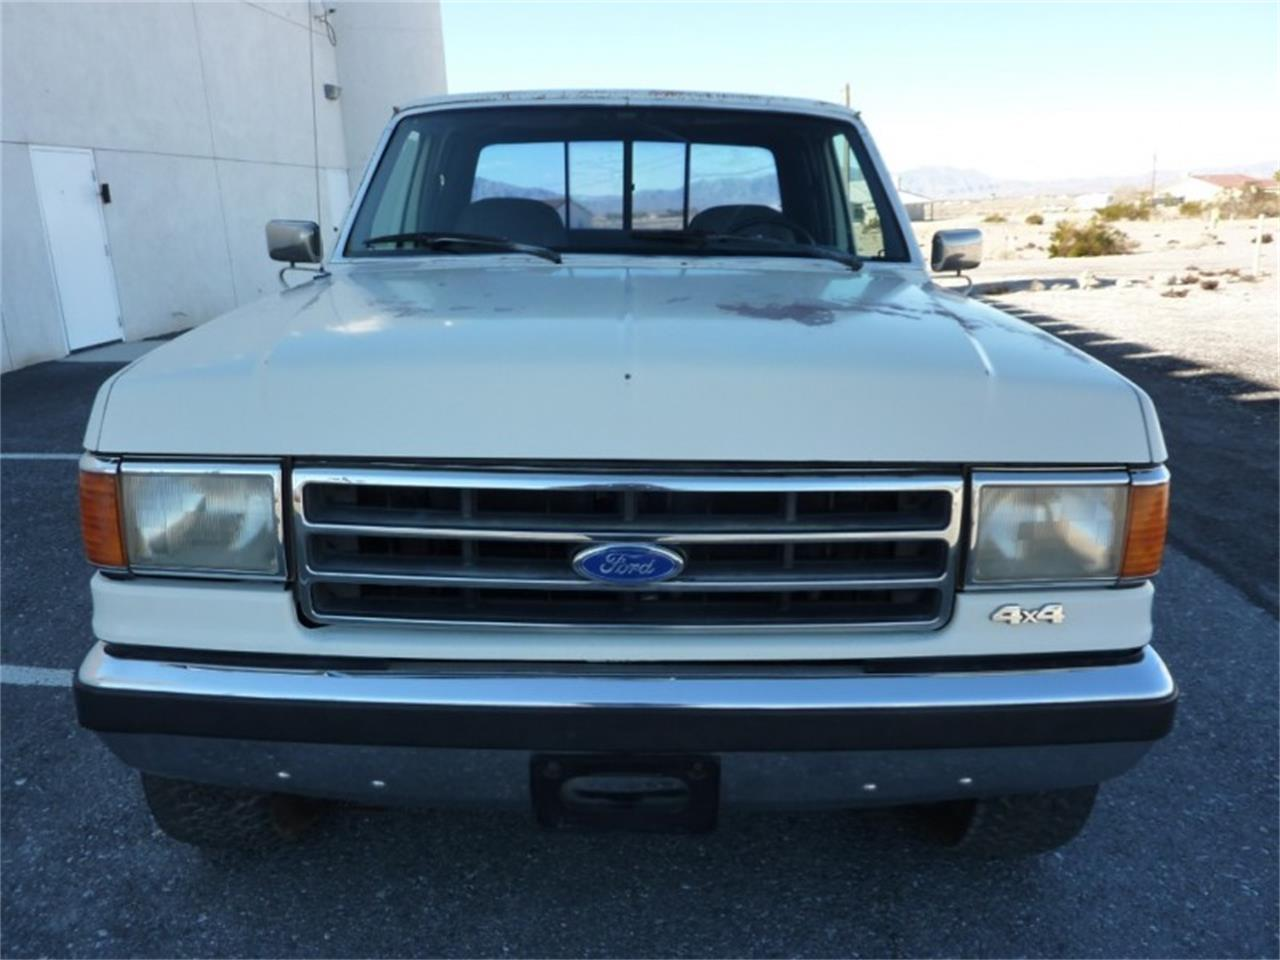 1989 Ford 3/4 Ton Pickup for sale in Pahrump, NV – photo 17